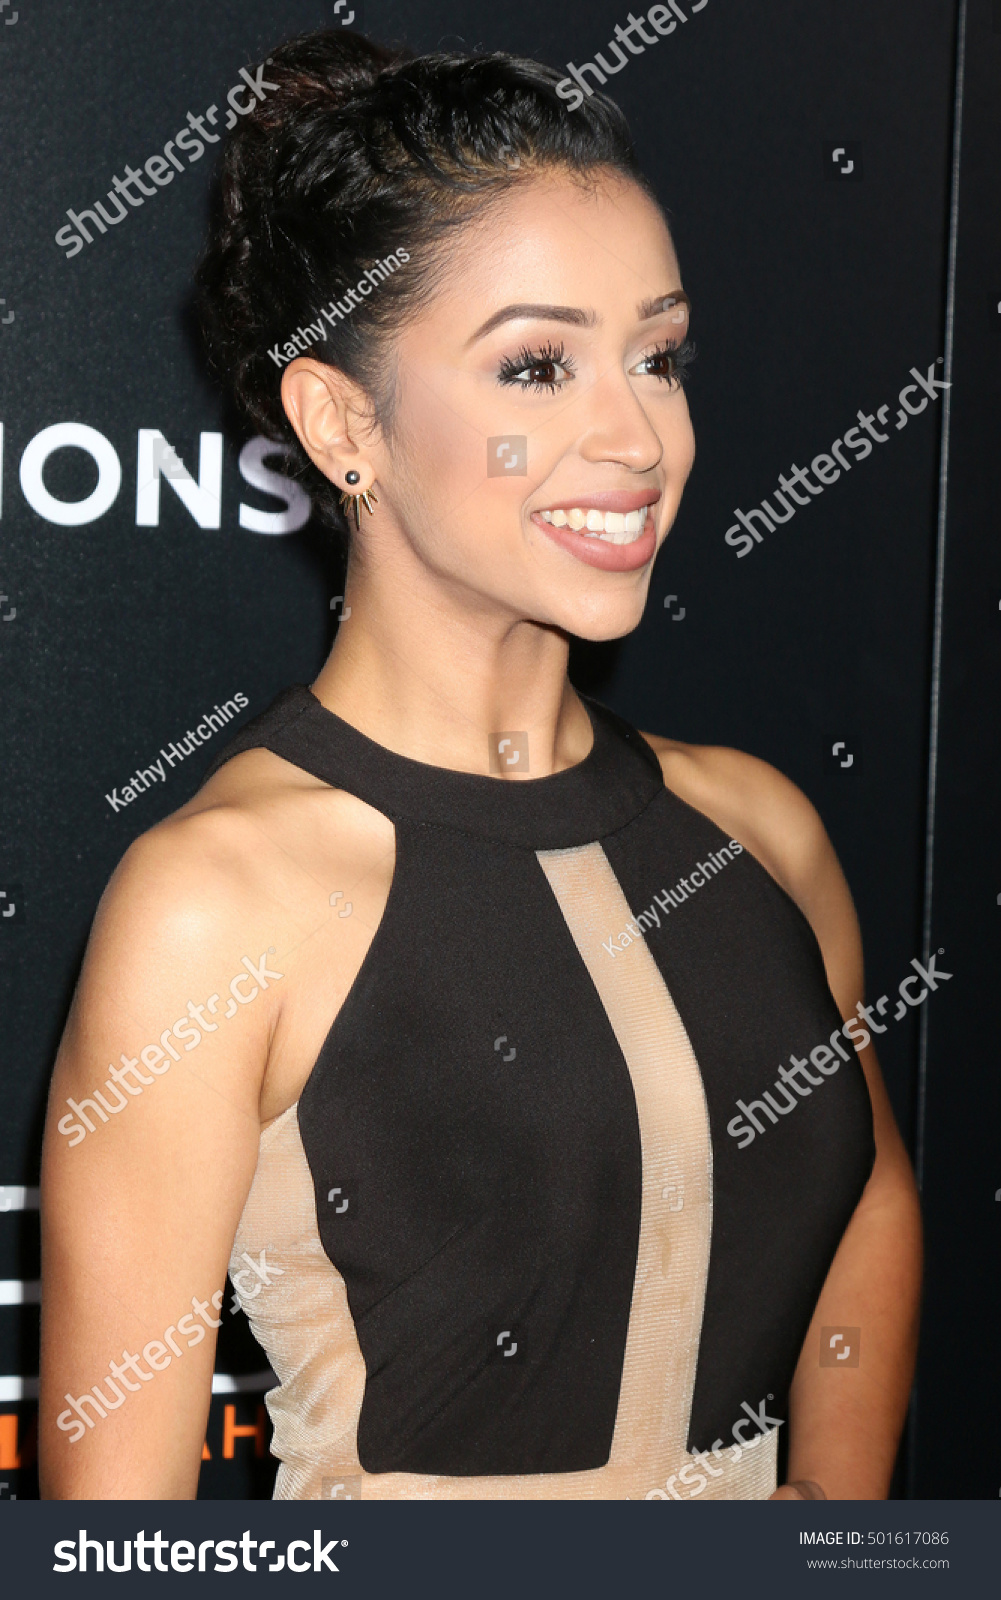 los angeles oct 17 liza koshy stock photo edit now 501617086